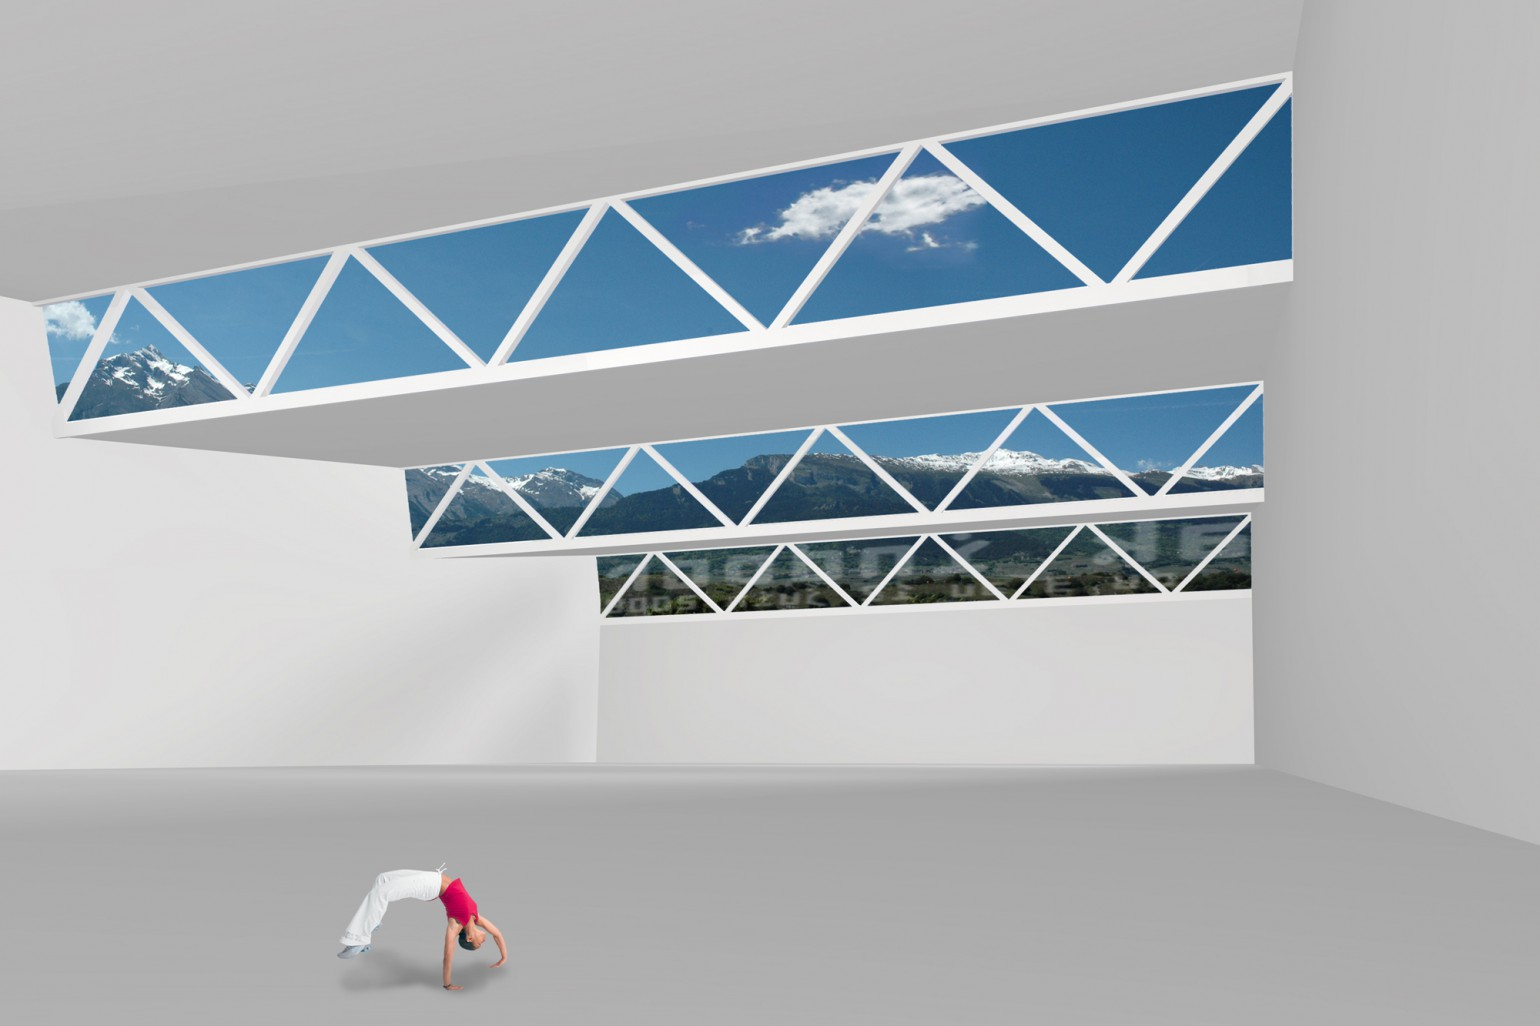 salle_polyvalente_iles_sion_meyer_architecture_sion_03